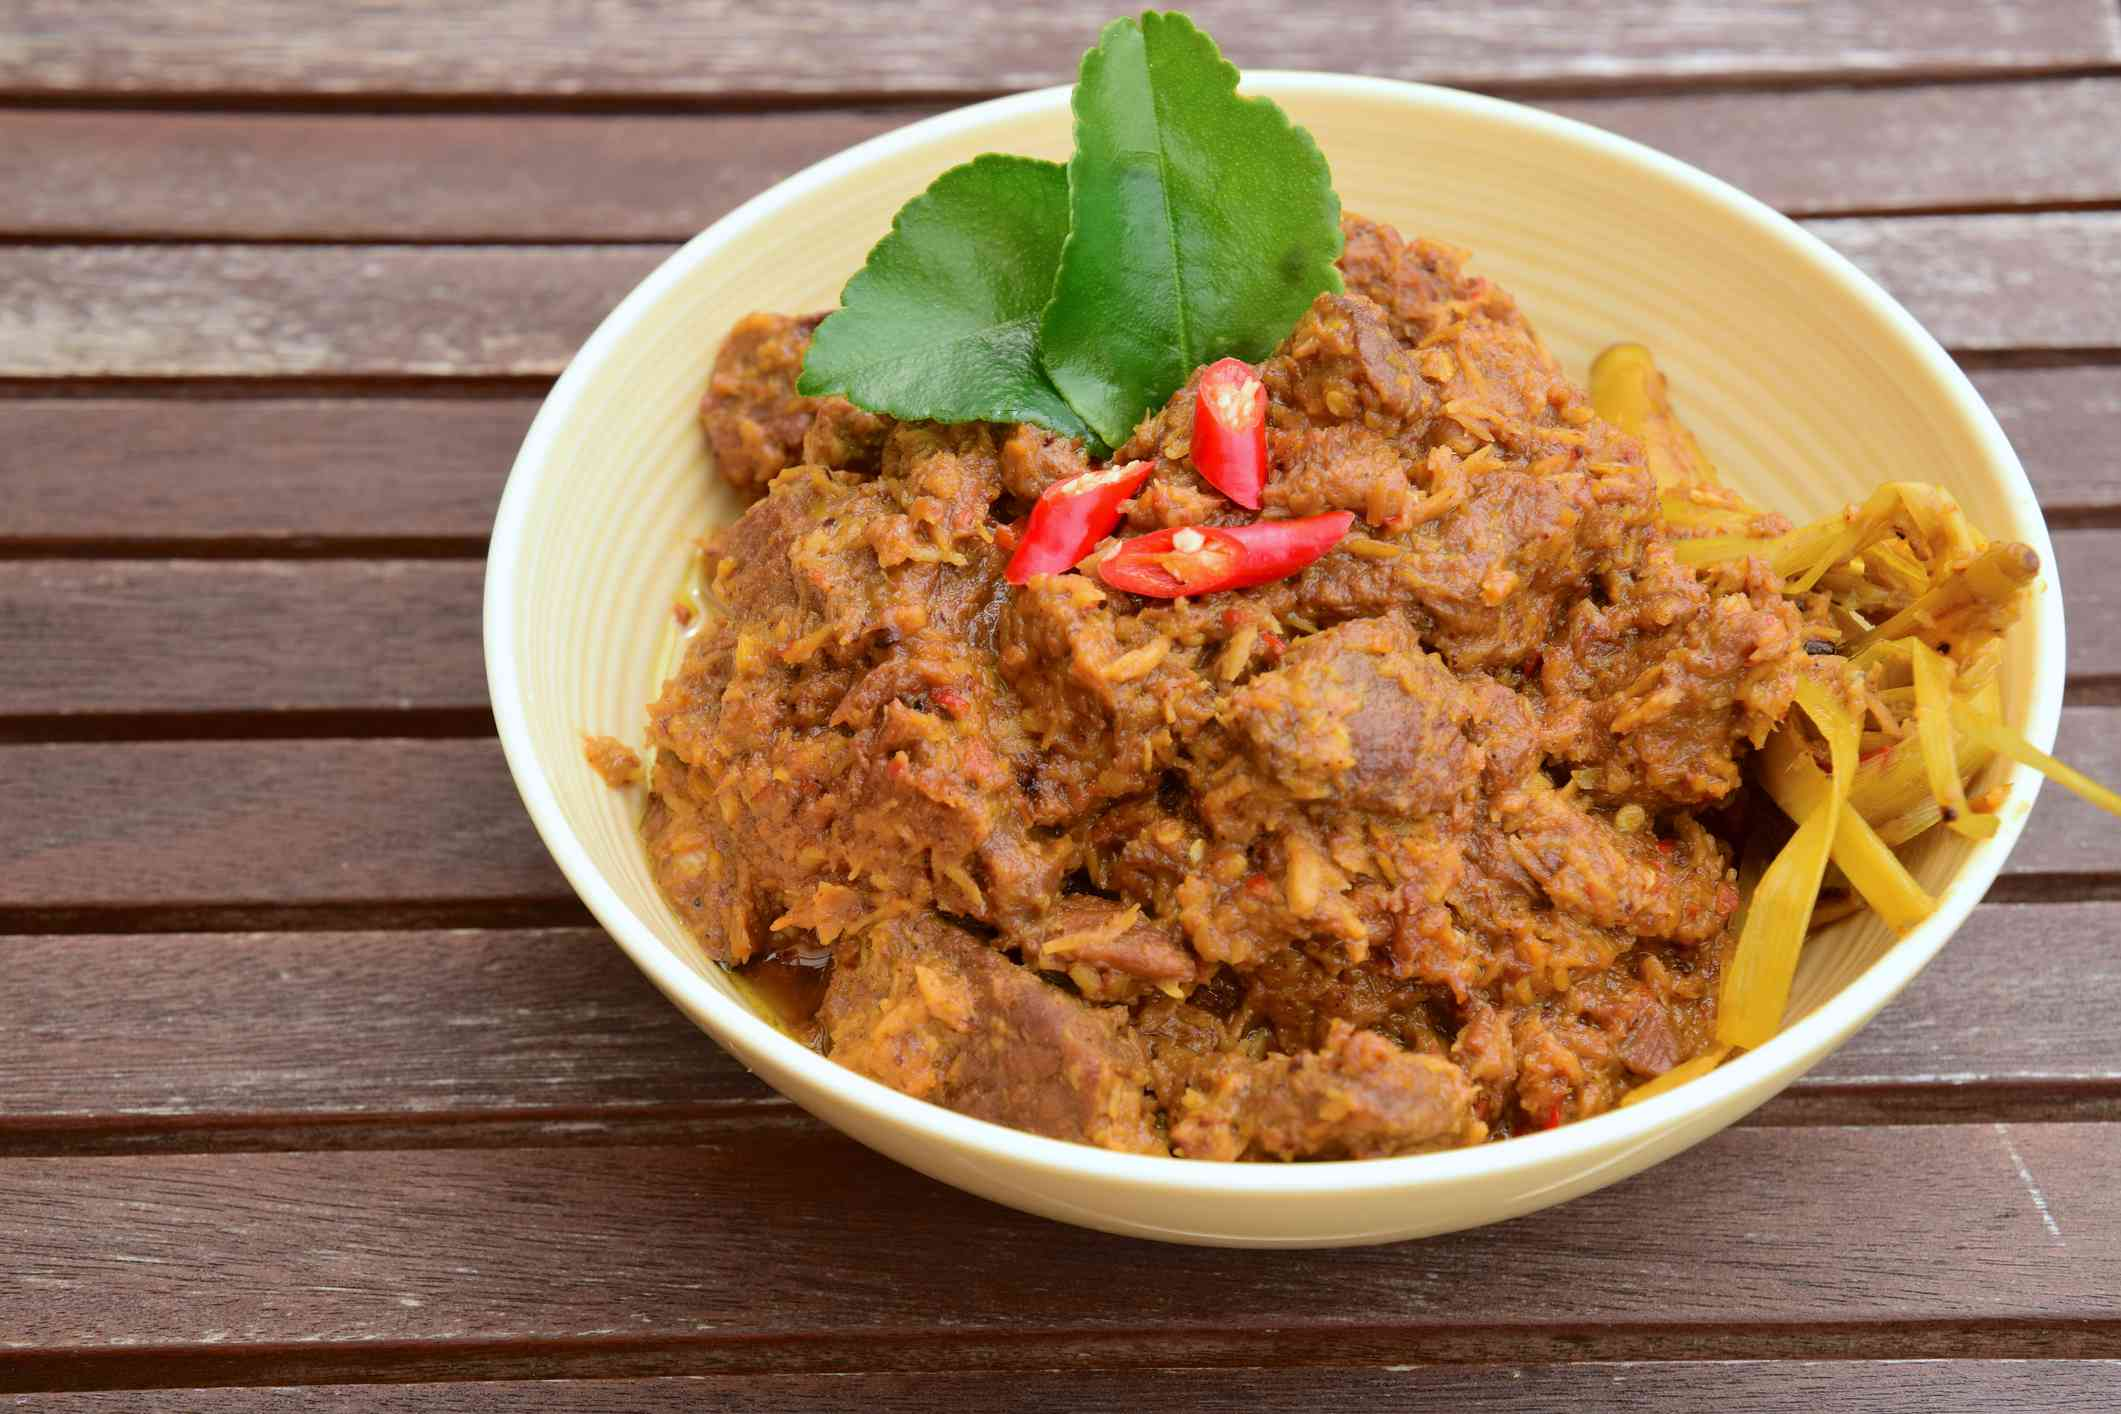 The popular Indonesian spicy beef stew in a bowl with bamboo shoots and garnishes